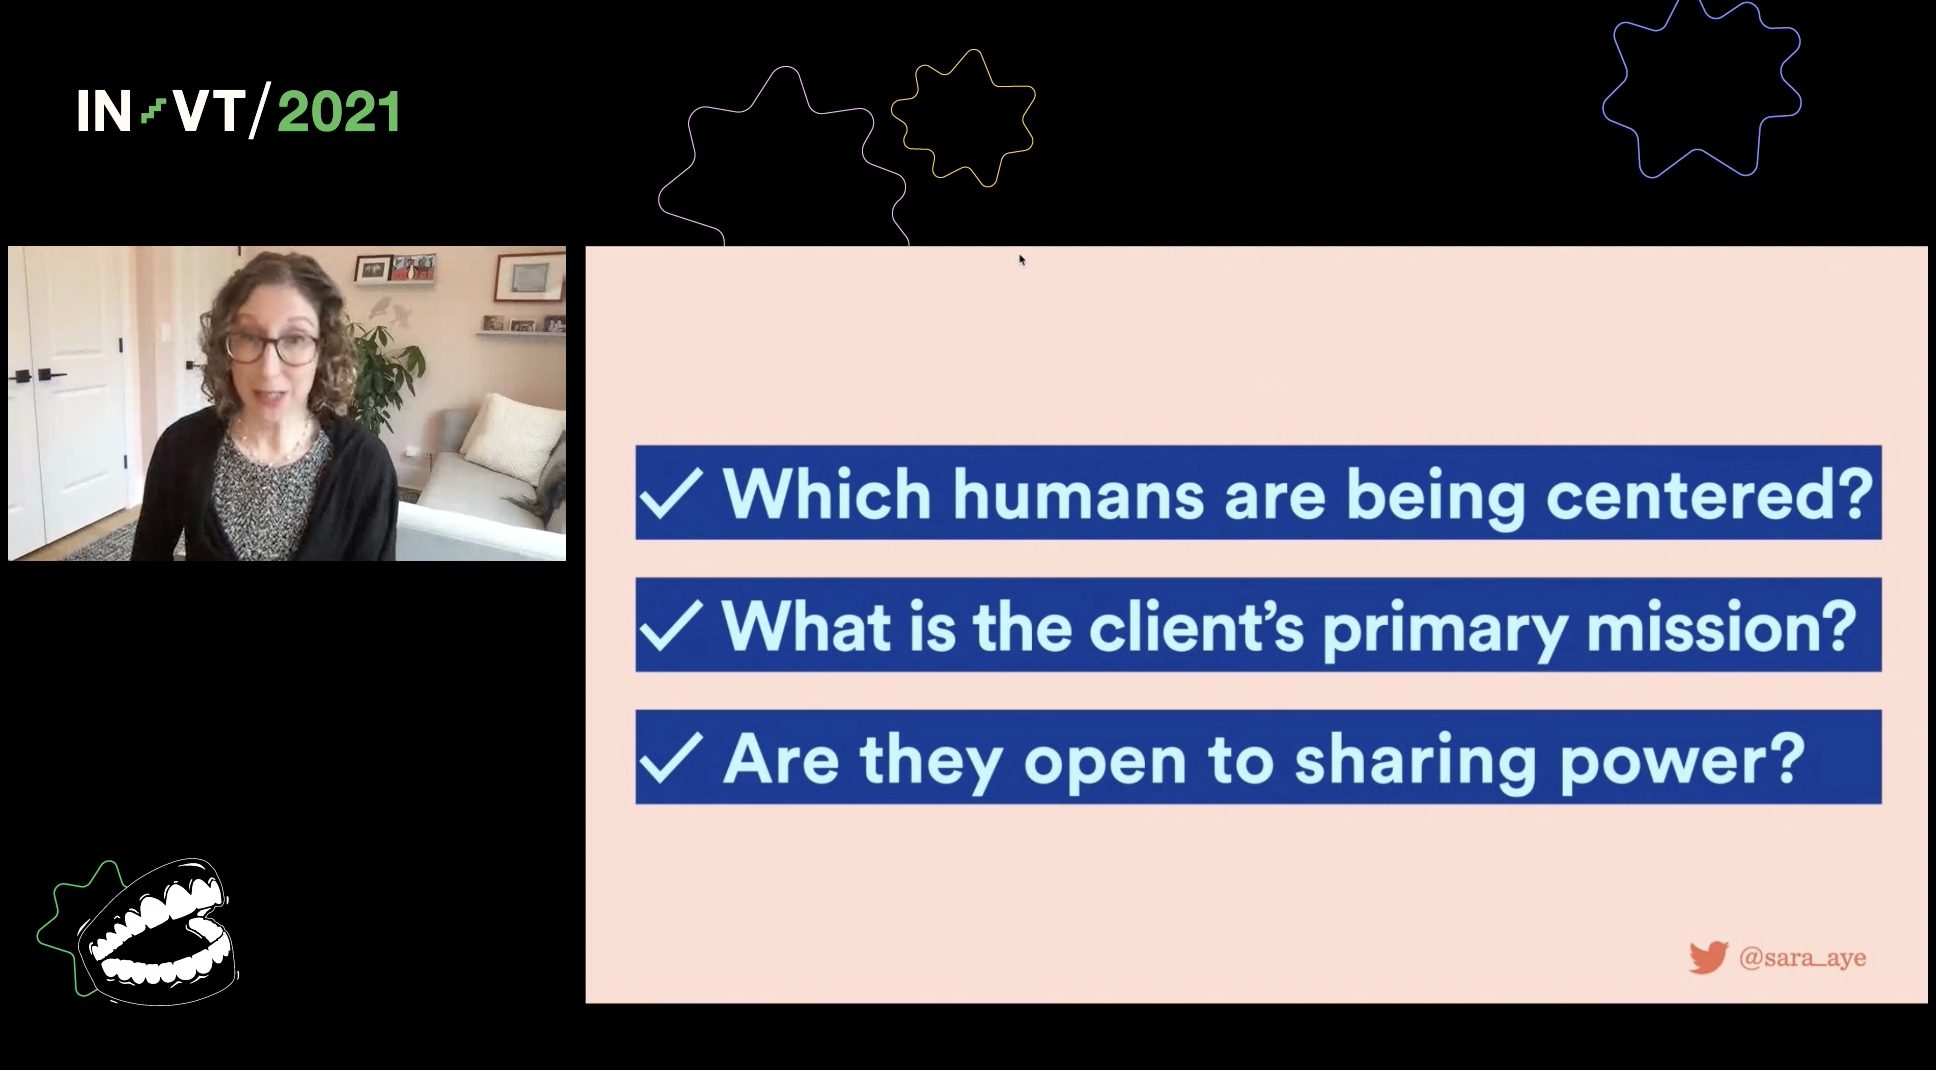 """a black backdrop with a small rectangle in the top left of a light-skinned woman with wavy brown hair and round gray glasses looking mid-sentence, and a large slide share with three questions, blue text on a light pink background: """"Which humans are being centered? What is the client's primary mission? Are they open to sharing power?"""""""